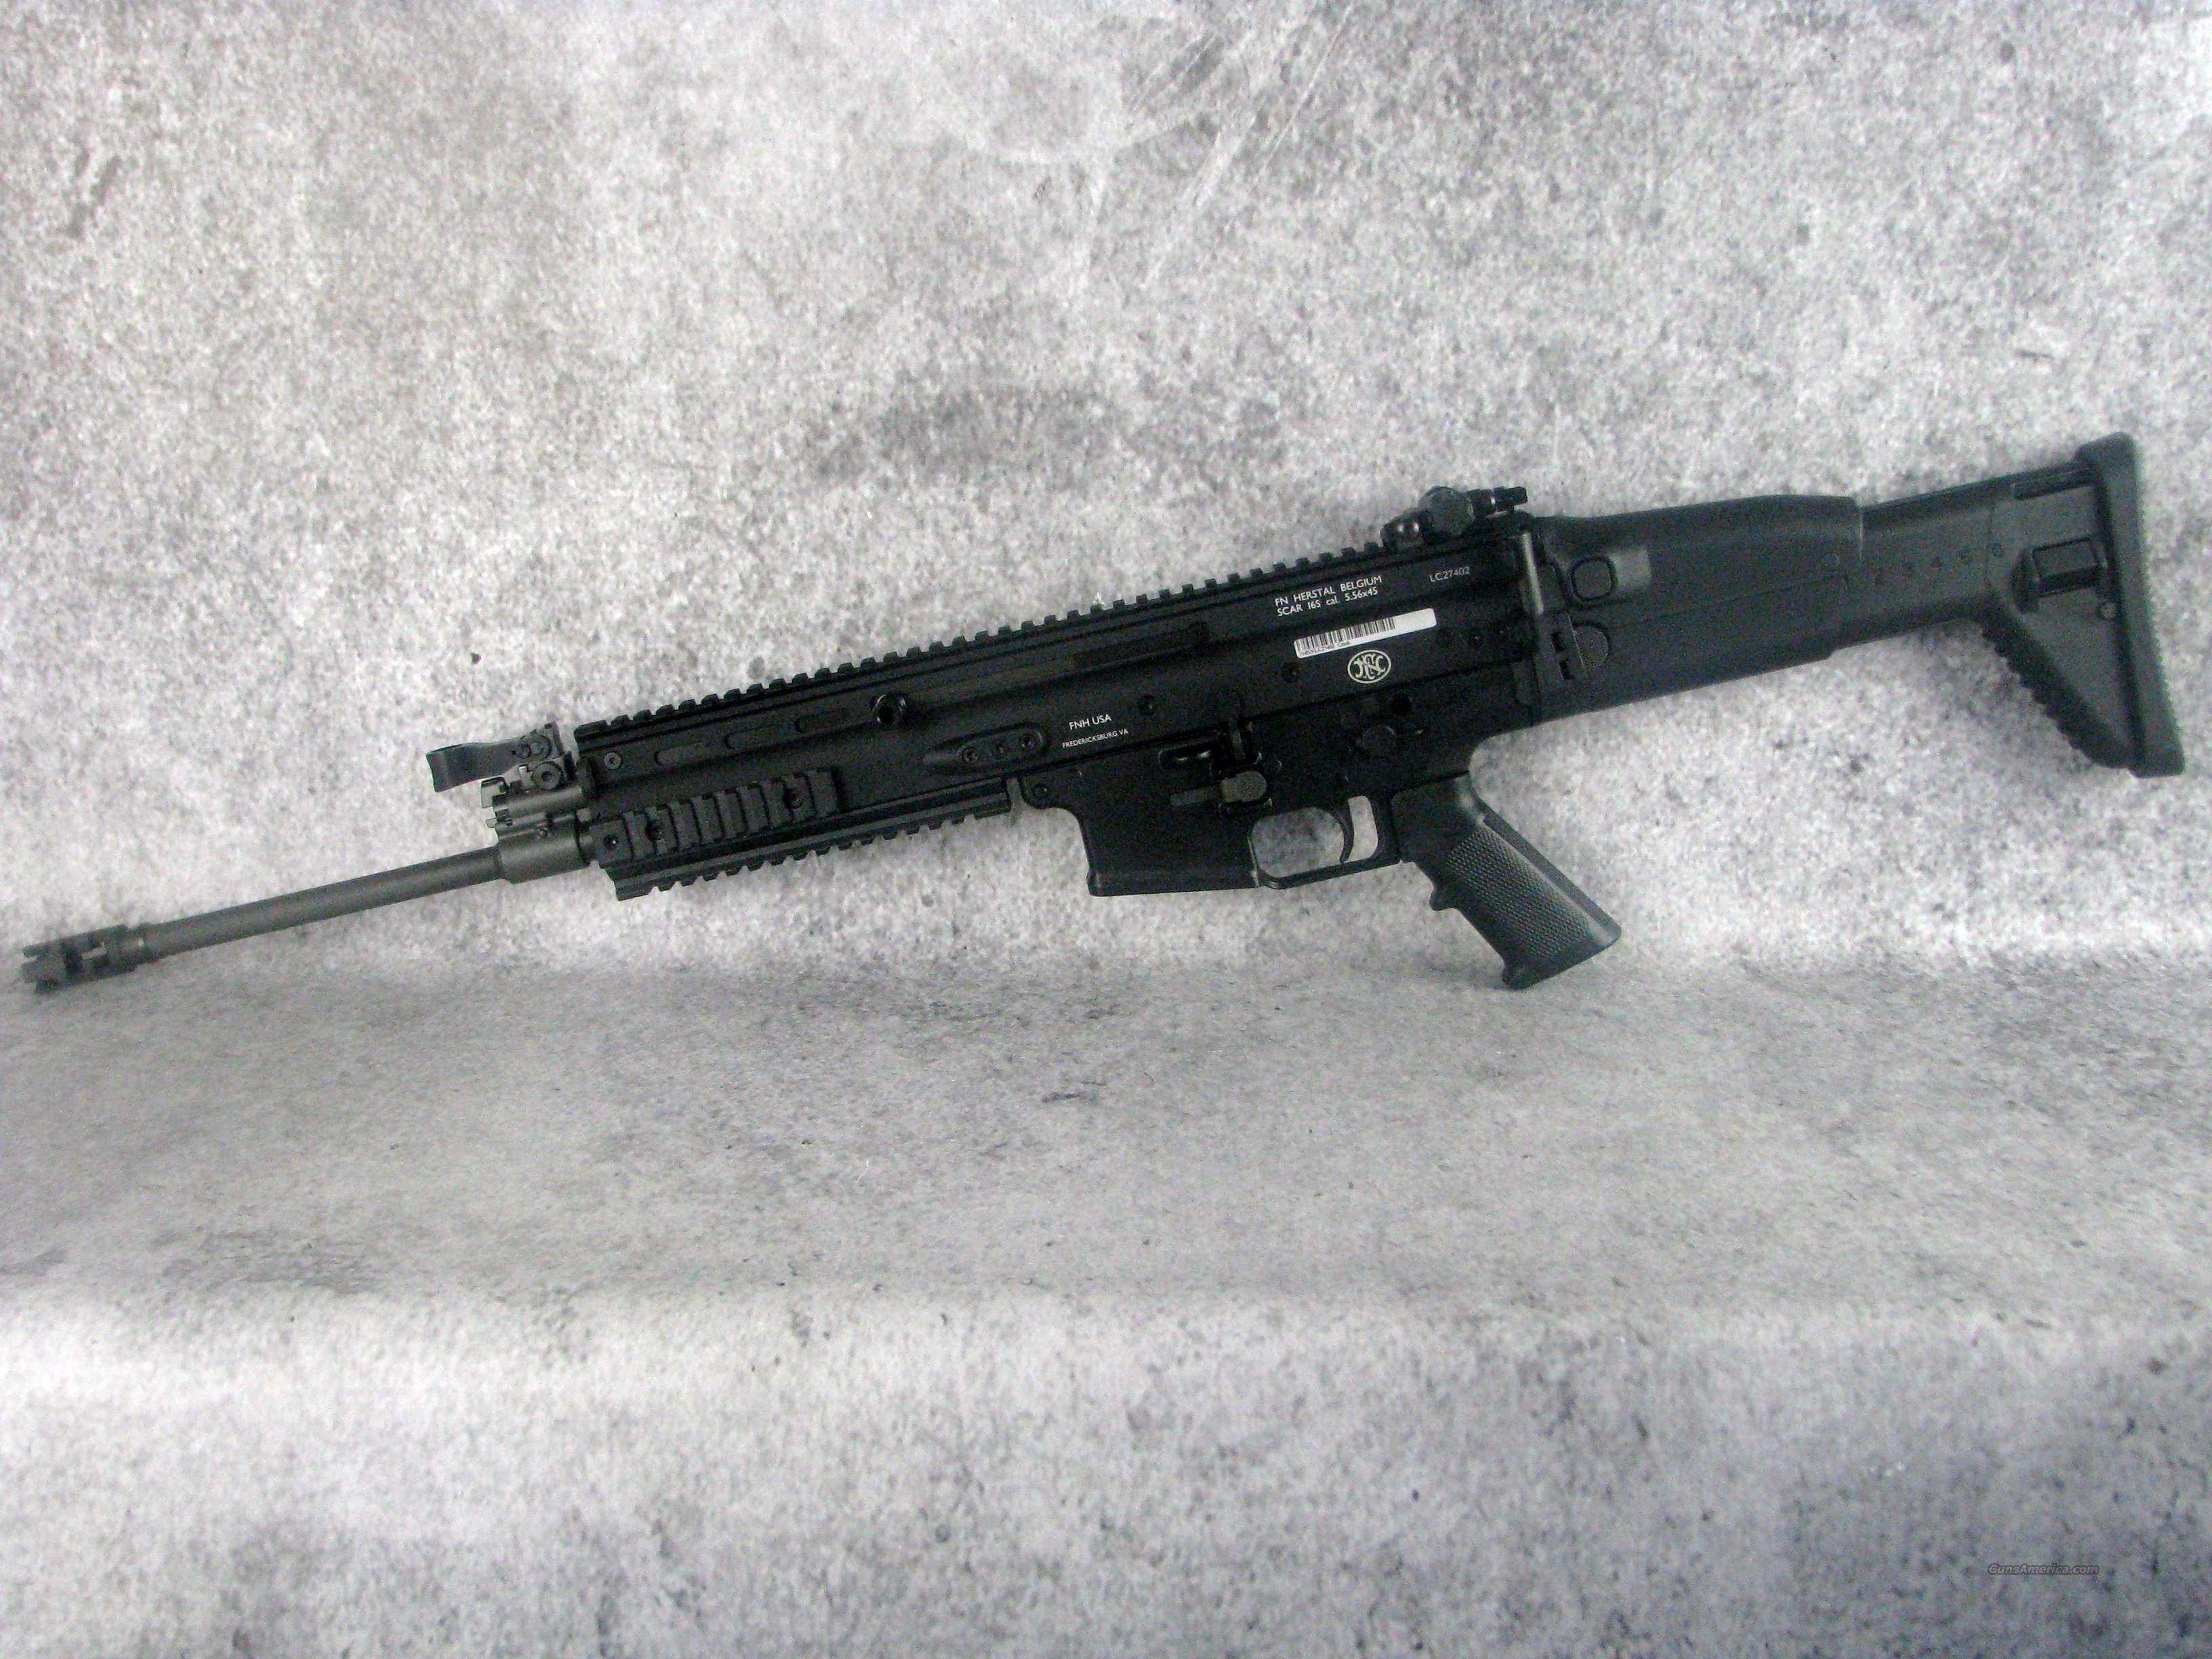 """FNH SCAR 16S 30rd """"ONE OF THE LAST MADE IN BELGIUM"""" / EZ Pay $128 Monthly  Guns > Rifles > FNH - Fabrique Nationale (FN) Rifles > Semi-auto > SCAR"""